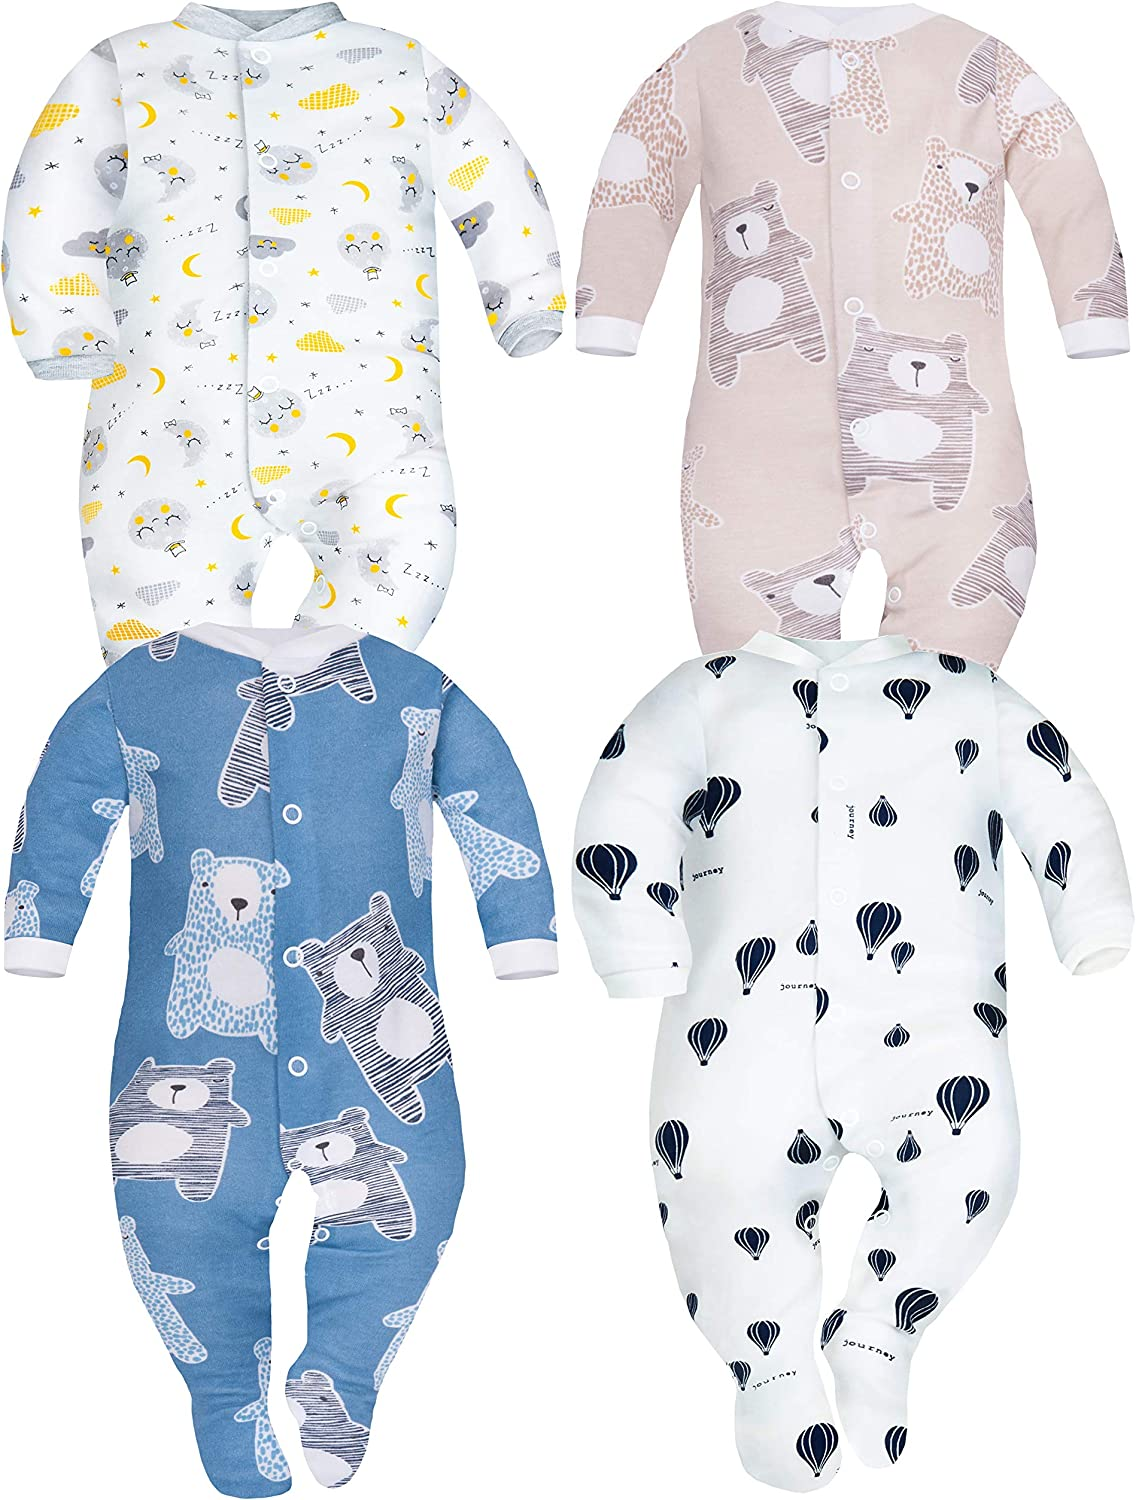 SIBINULO Baby Boys Baby Girls Sleepsuit with Feet Mix Sizes 0-9 Months Pack of 4